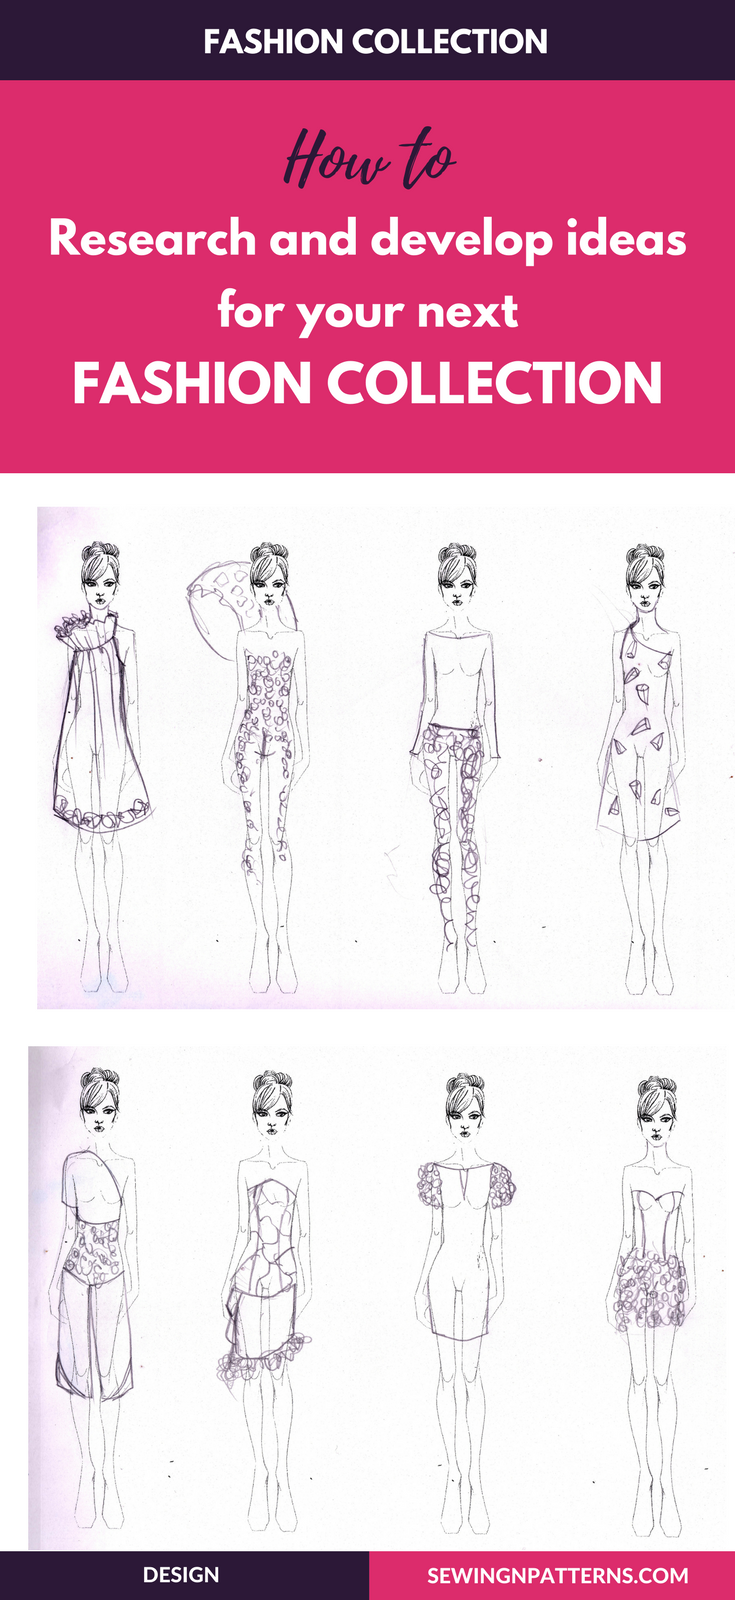 Fashion Collection Inspiration The Ultimate Guide To Research And Developing Ideas For Your Next Fashion Collection Sewingnpatterns